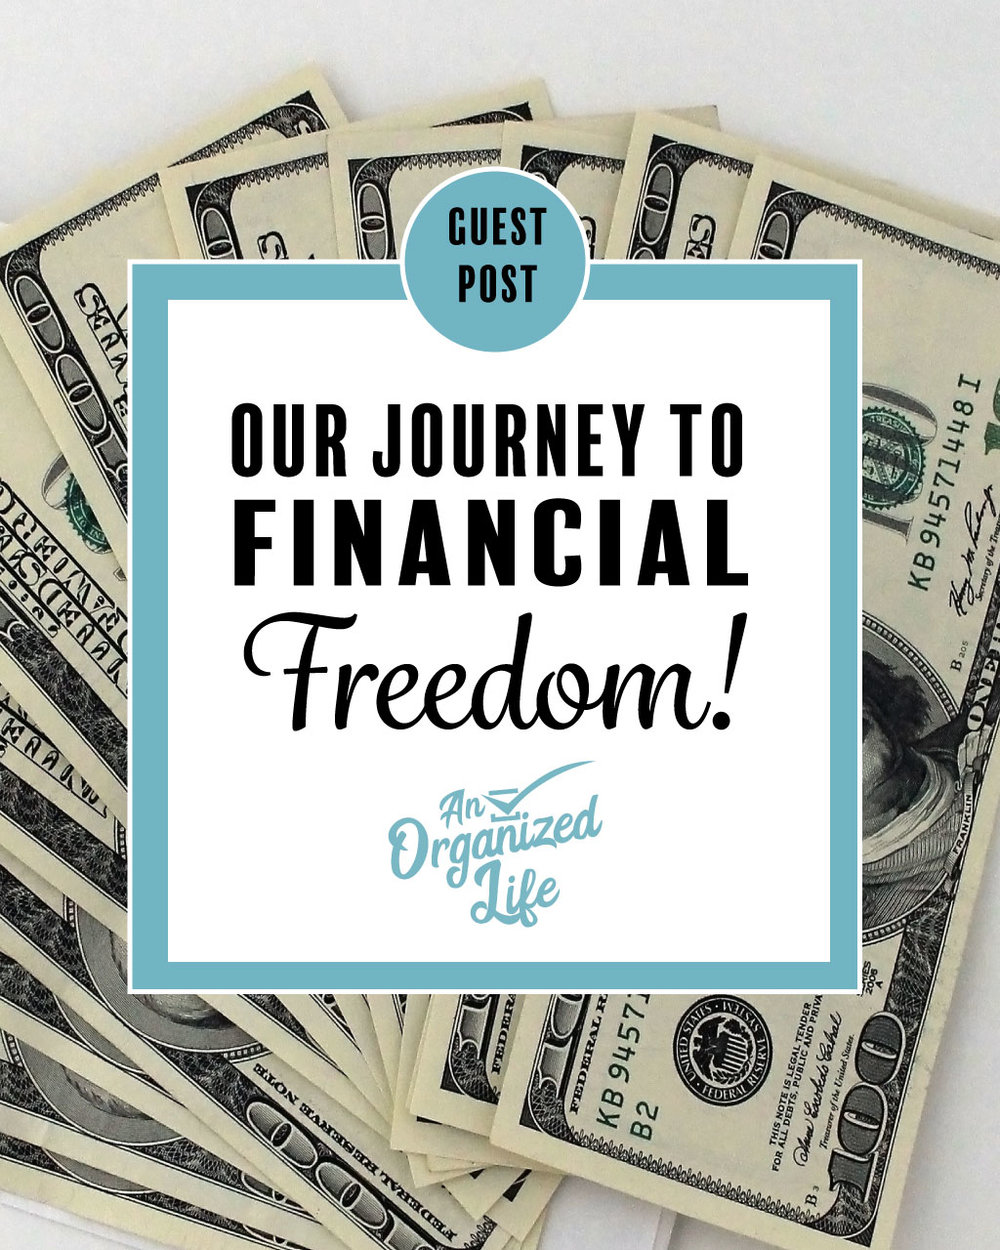 Fighting debt and finding financial freedom!